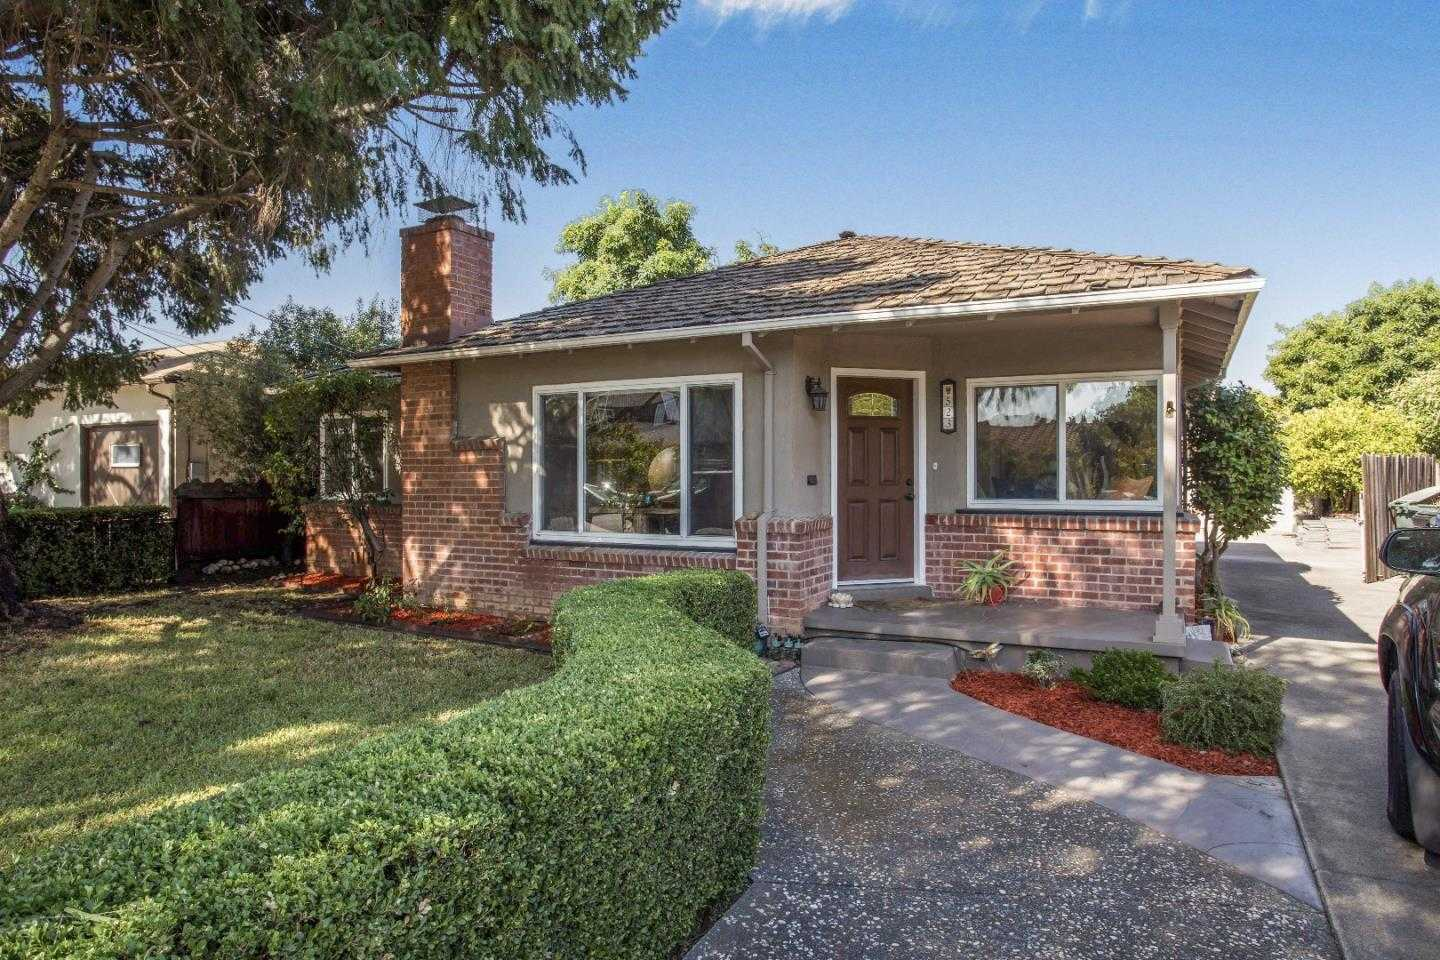 $1,499,000 - 3Br/1Ba -  for Sale in Sunnyvale